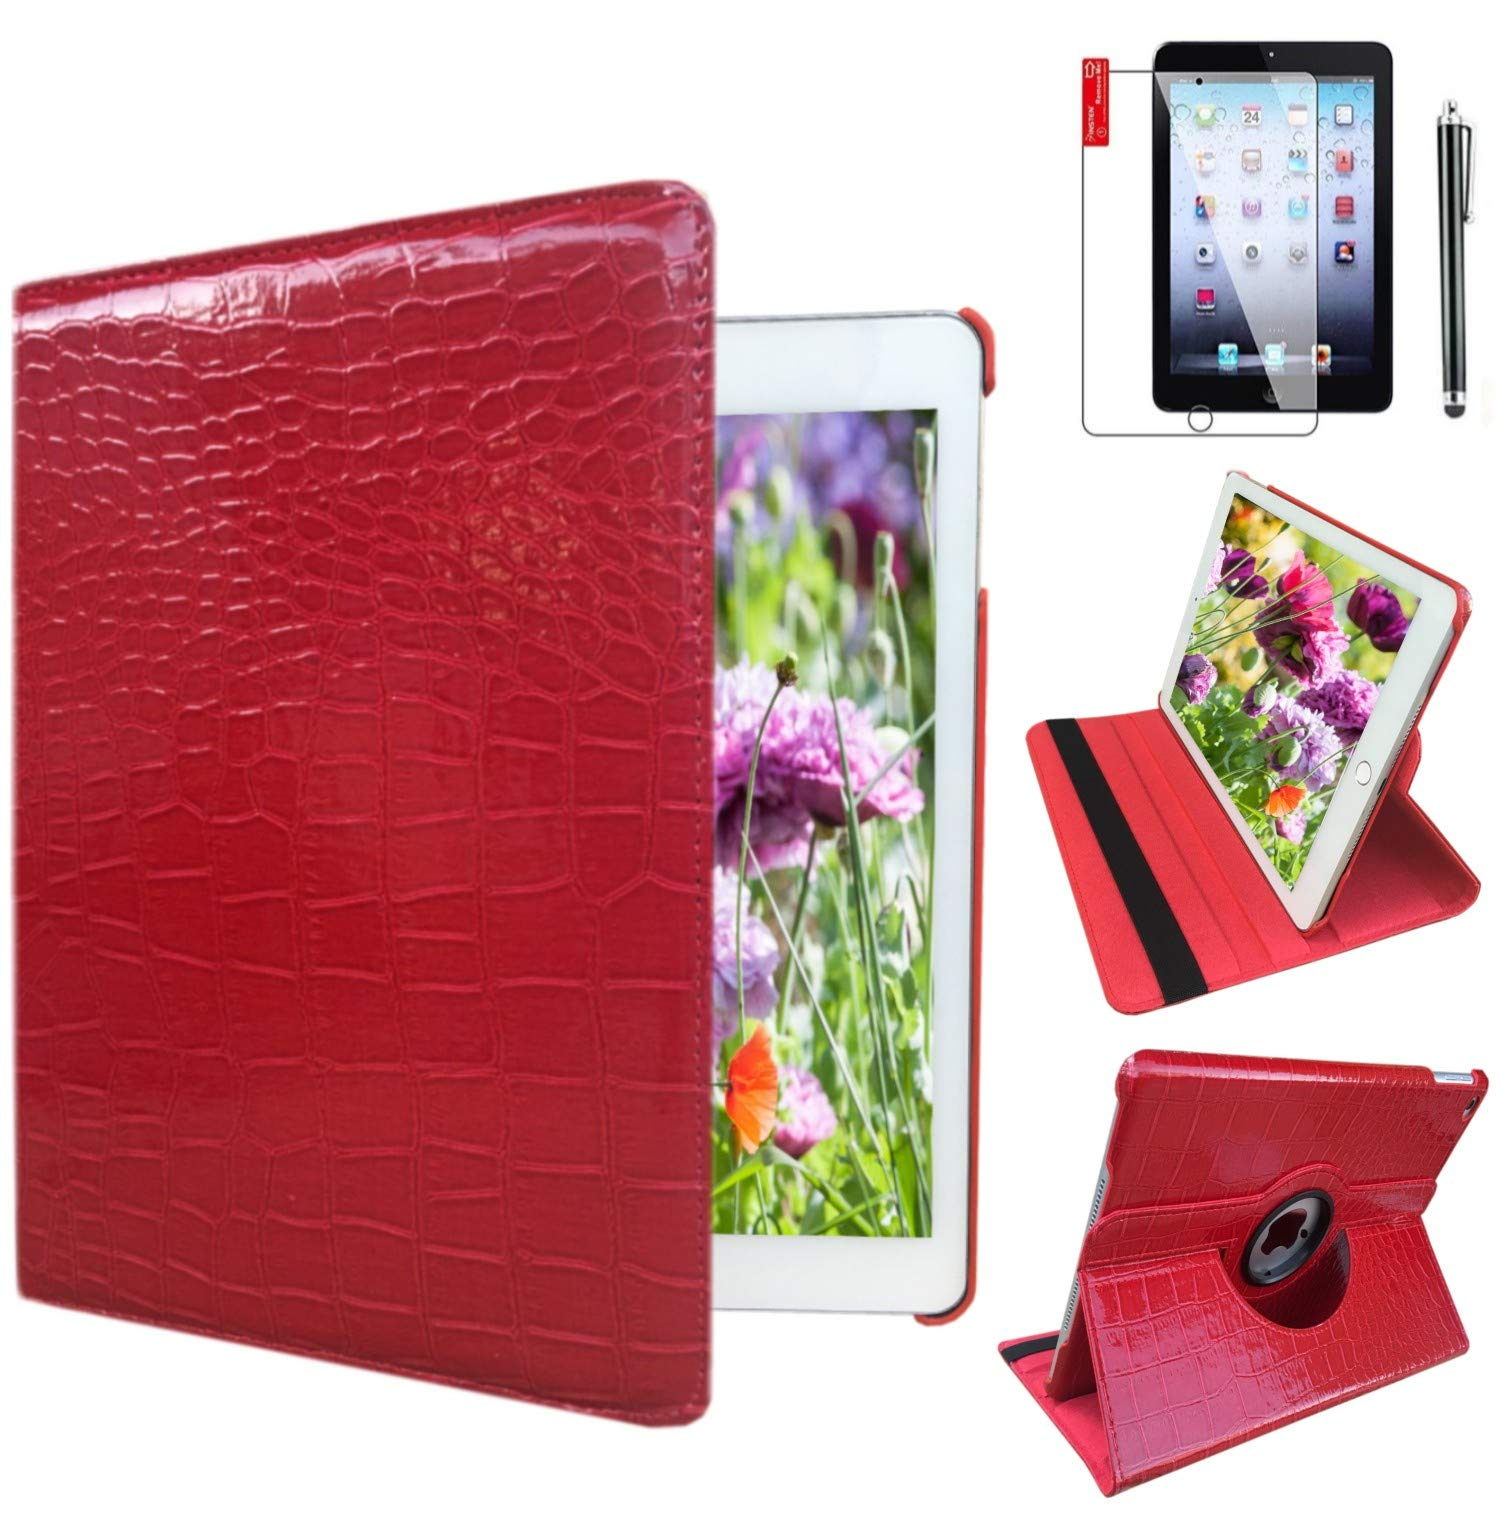 Ipad Case 360 Degrees Rotating Stand Leather Magnetic Smart Cover Case for Ipad 2/3/4 Generation Case with Bonus Screen Protector, Stylus and Cleaning Cloth (Crocodile Pattern)